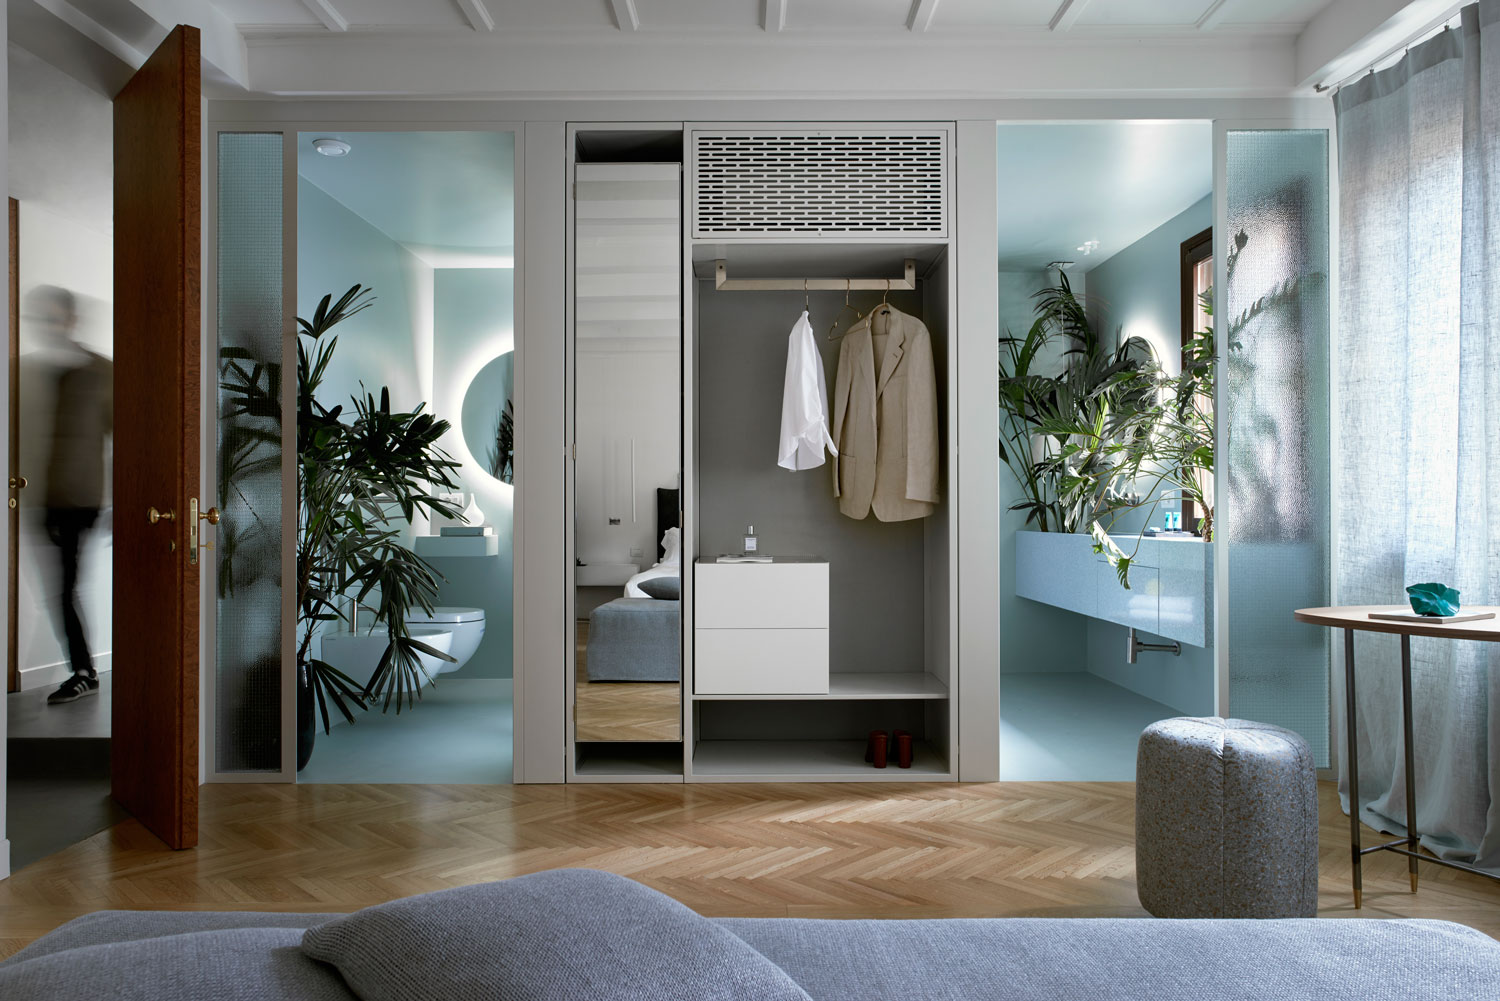 Casa flora design apartment in venice challenges for Design casa